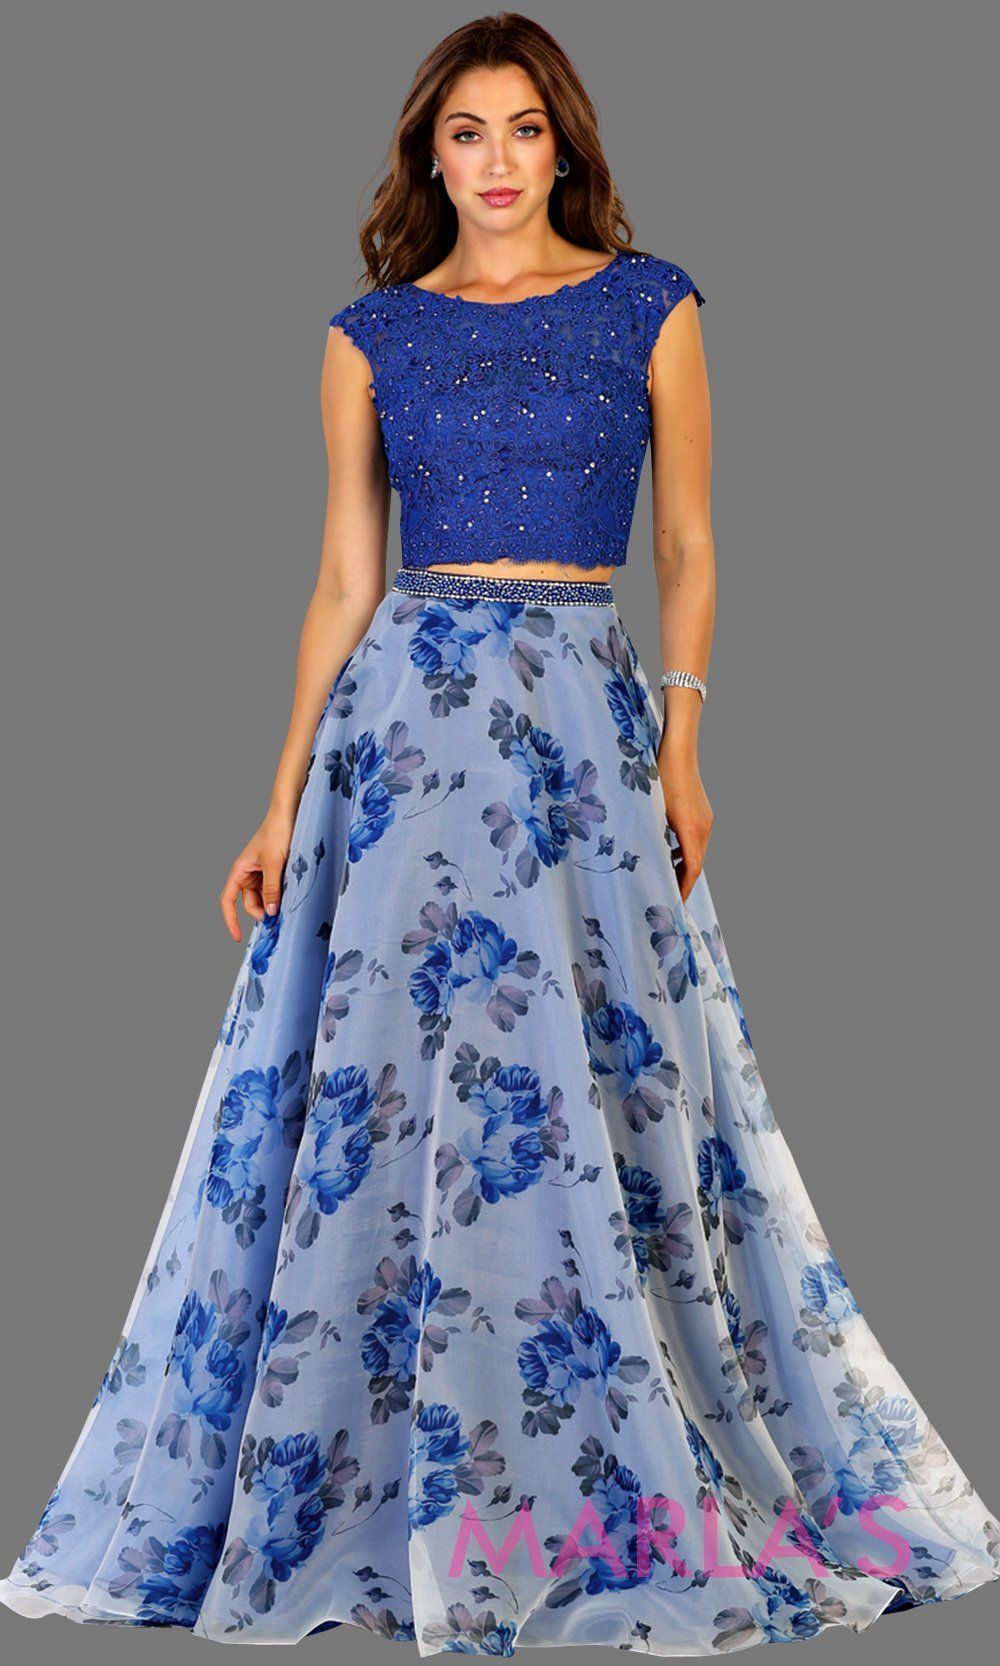 Long Two Piece Royal Blue Dress With Floral Skirt And Lace Top It